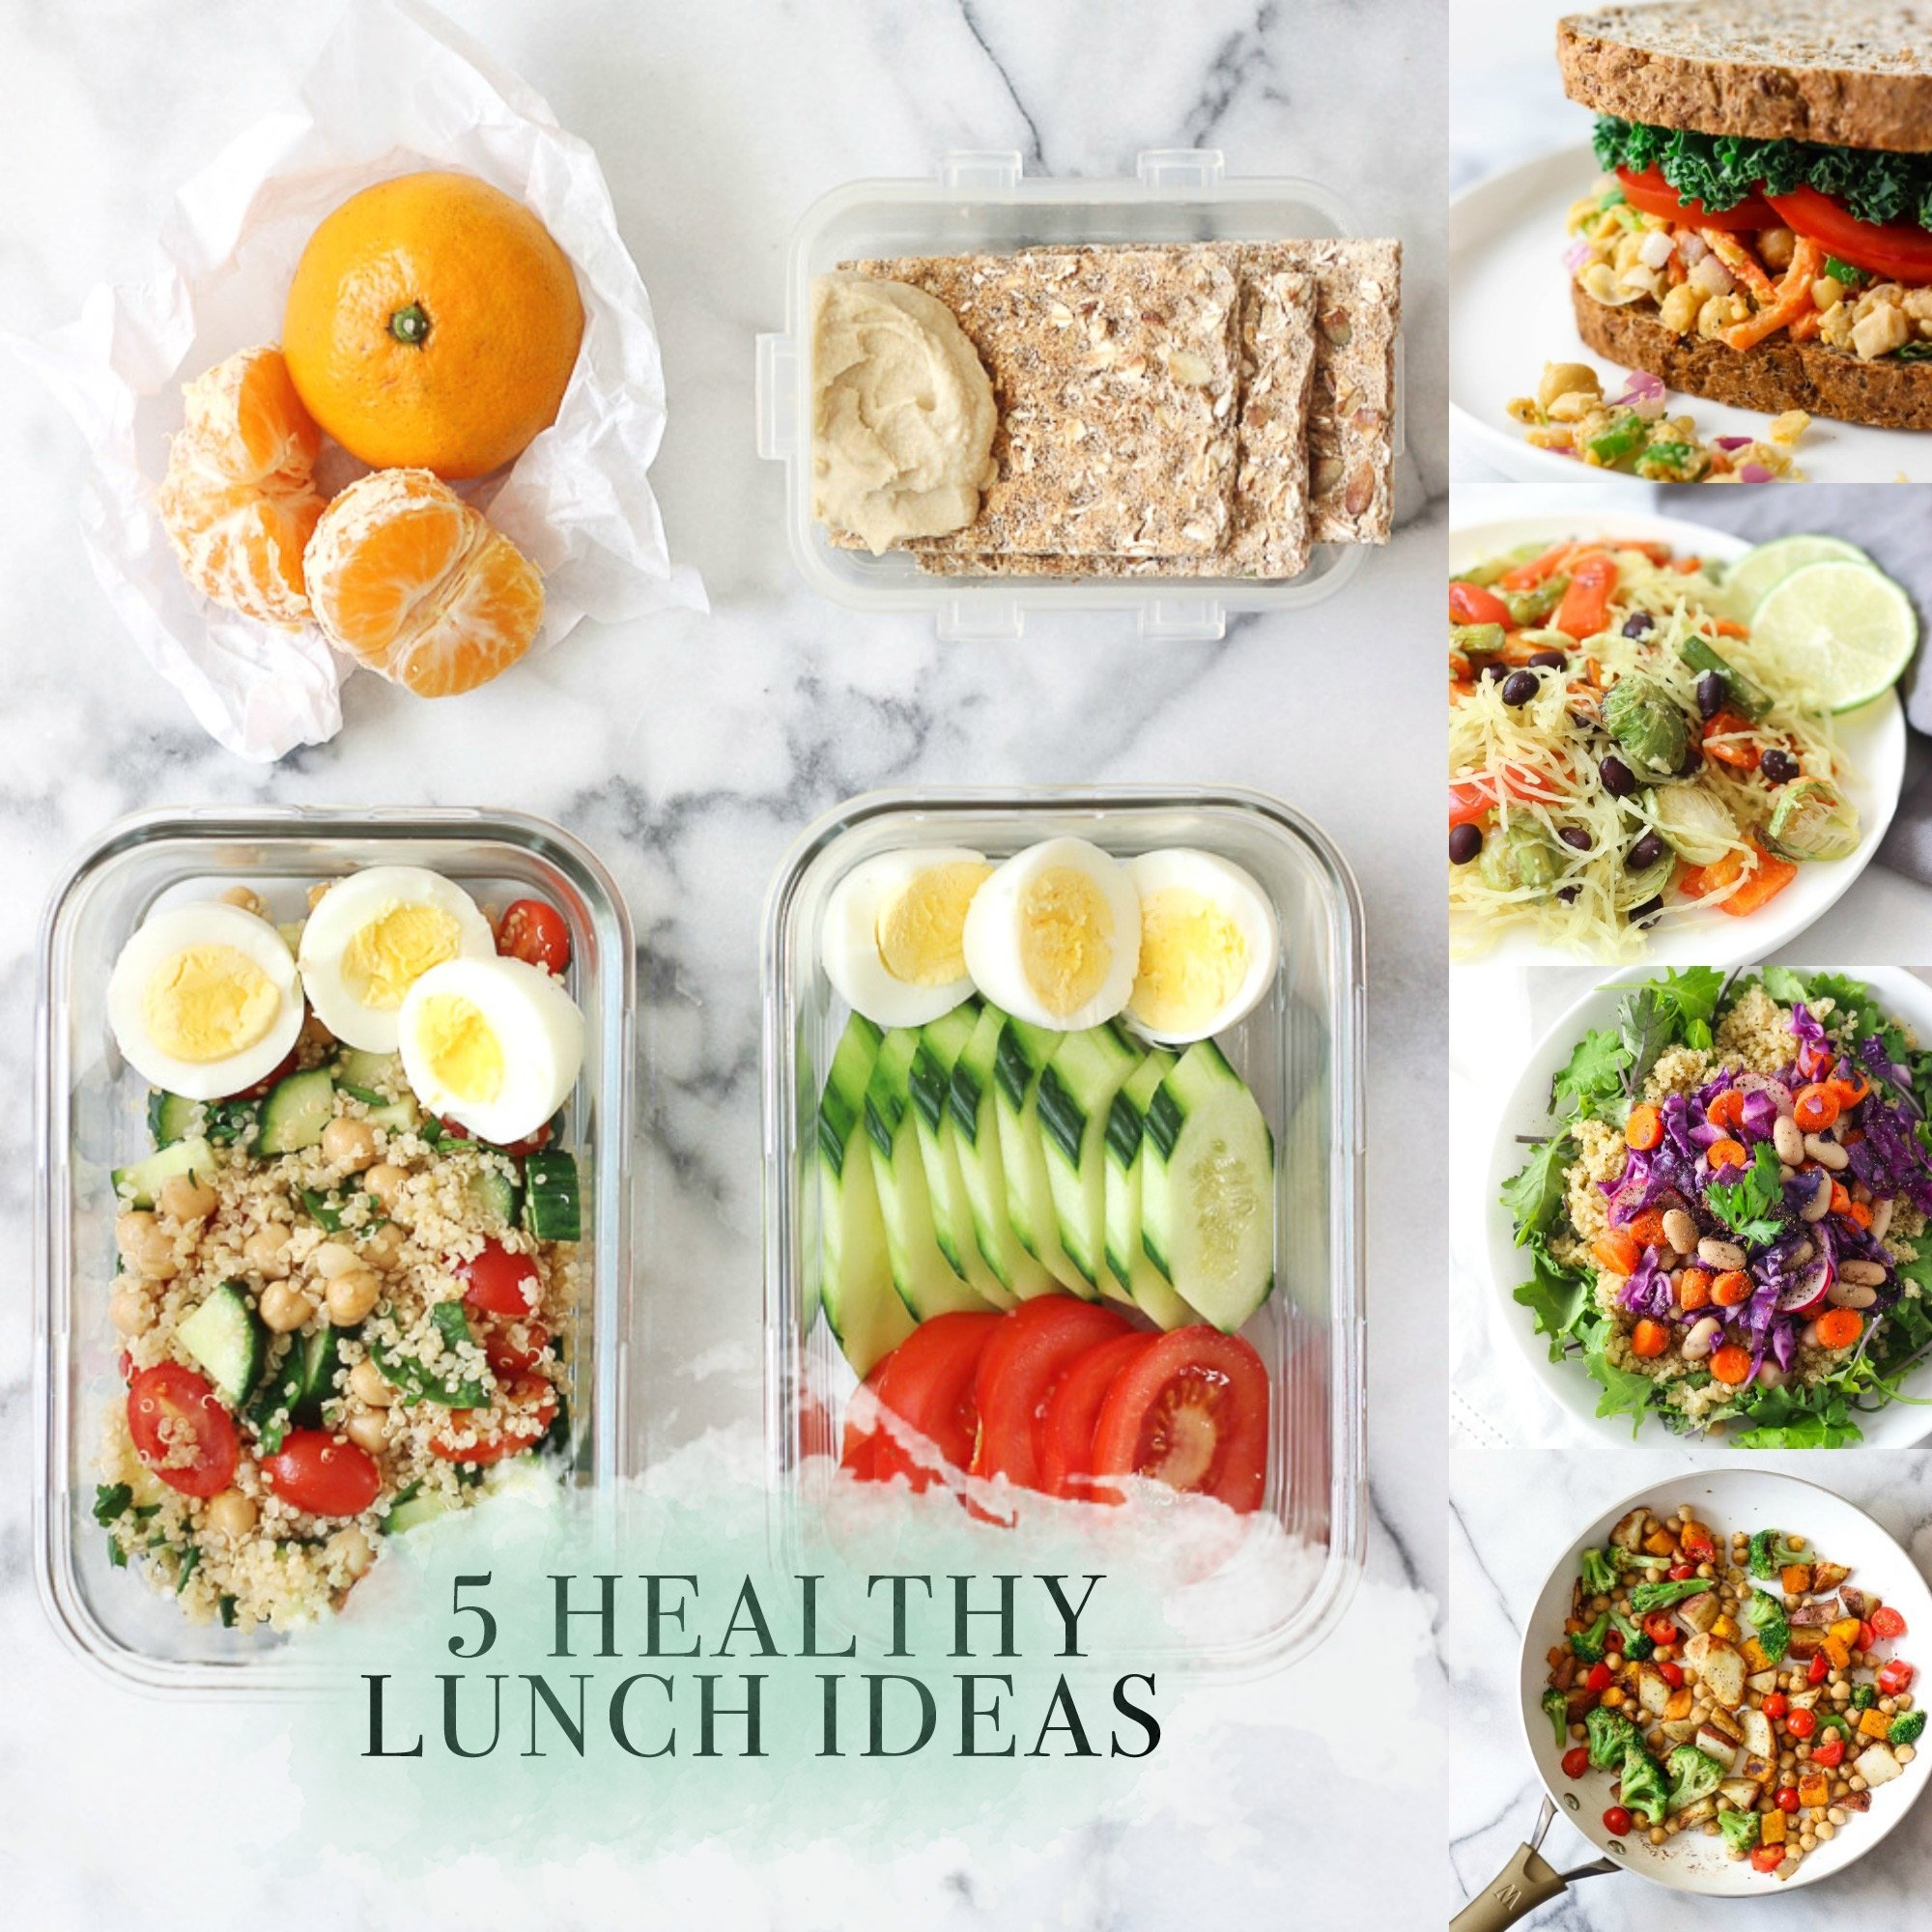 10 Elegant Diet Lunch Ideas For Work lunch archives page 3 of 8 exploring healthy foods 2 2020